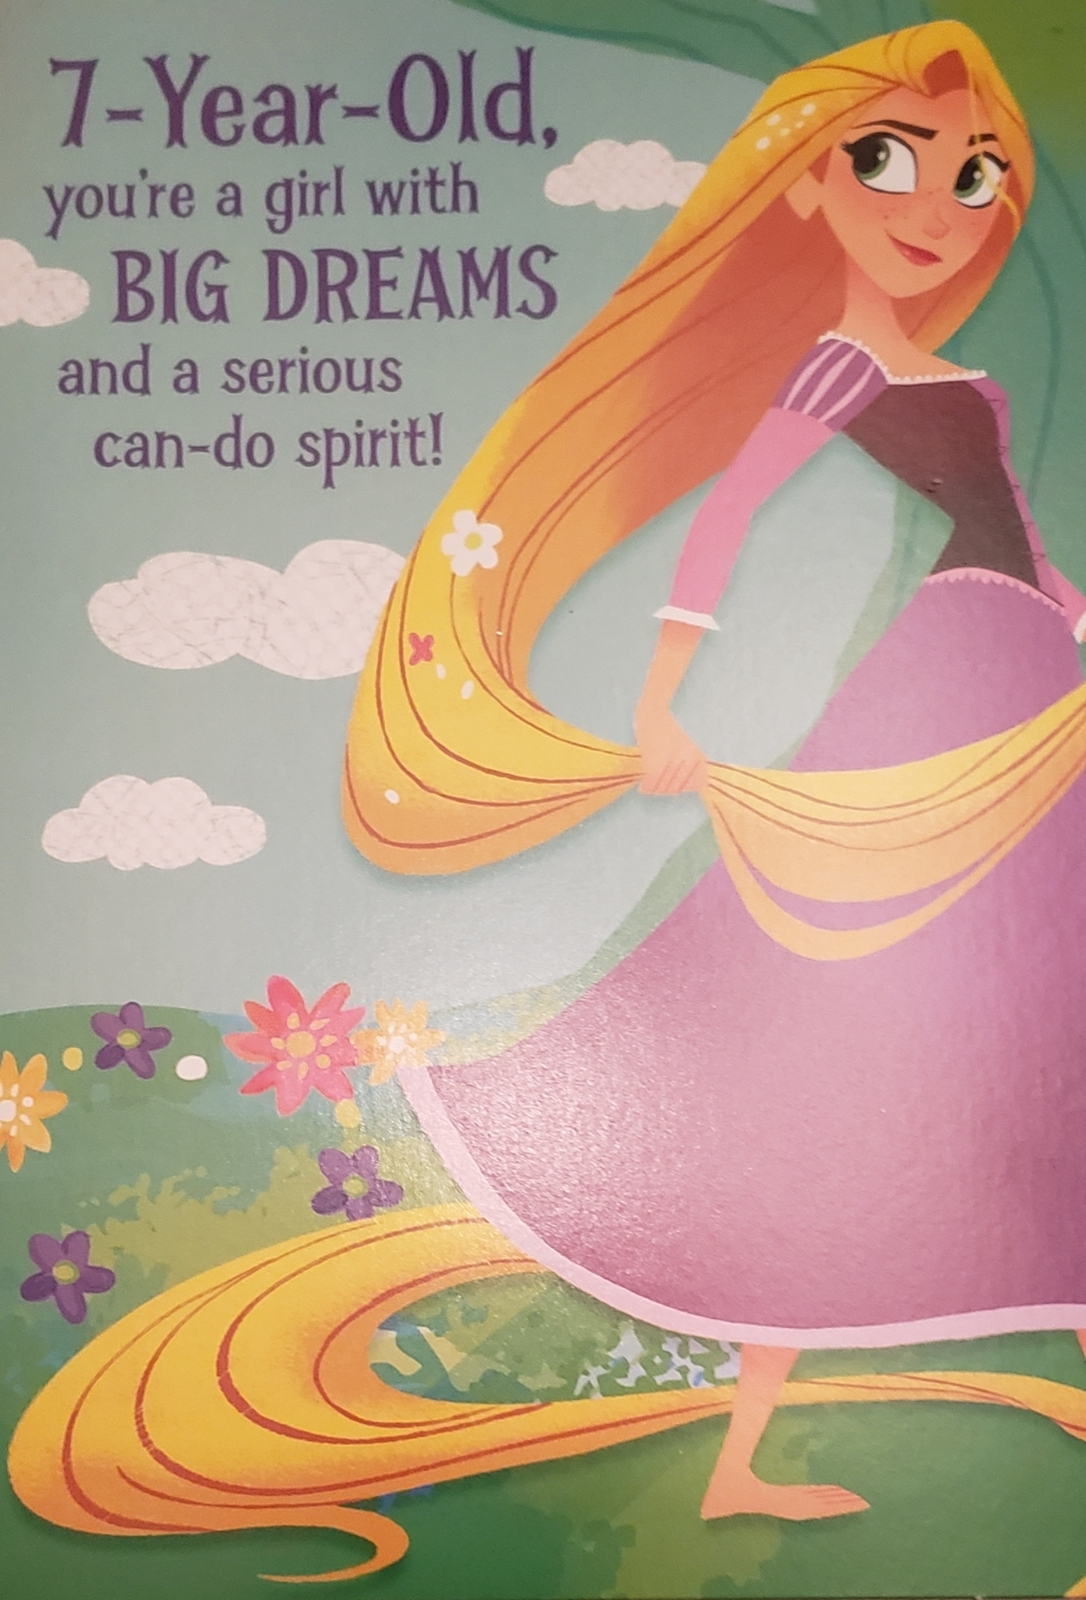 Disney Tangled Kids Birthday Card (Greeting Card for a 7 Year-Old) circa 2017 - $5.00